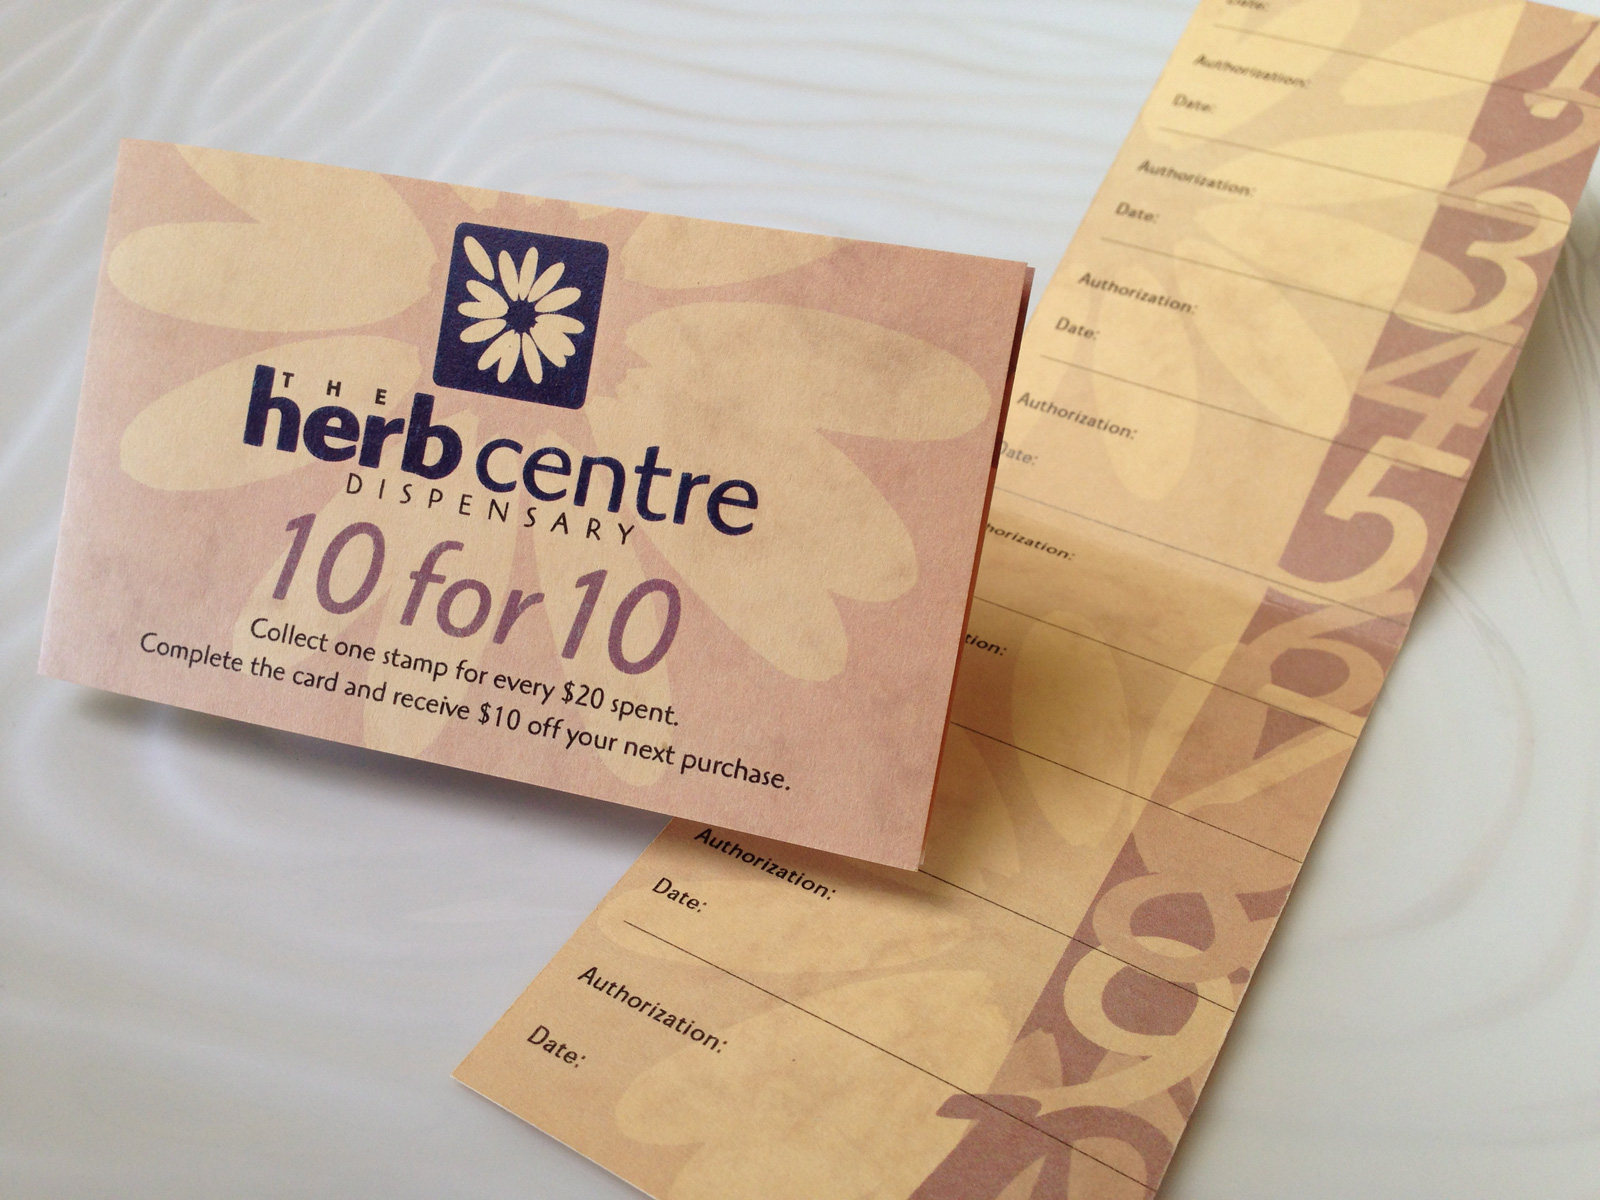 Herb Centre logo and 10-for-10 loyalty card